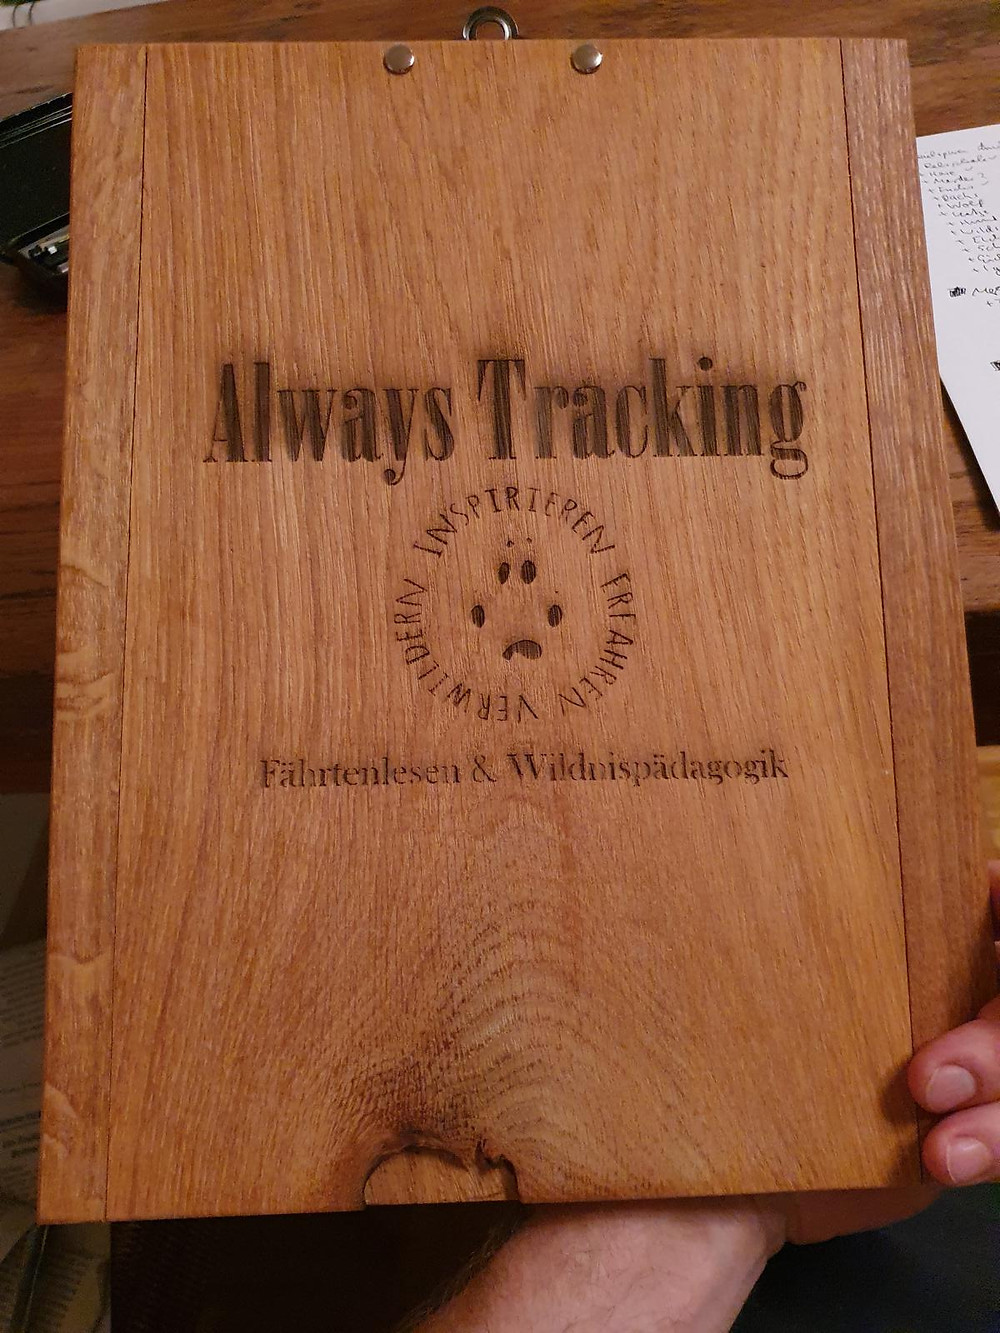 Always Tracking - Fährtenlesen & Wildnispädagogik